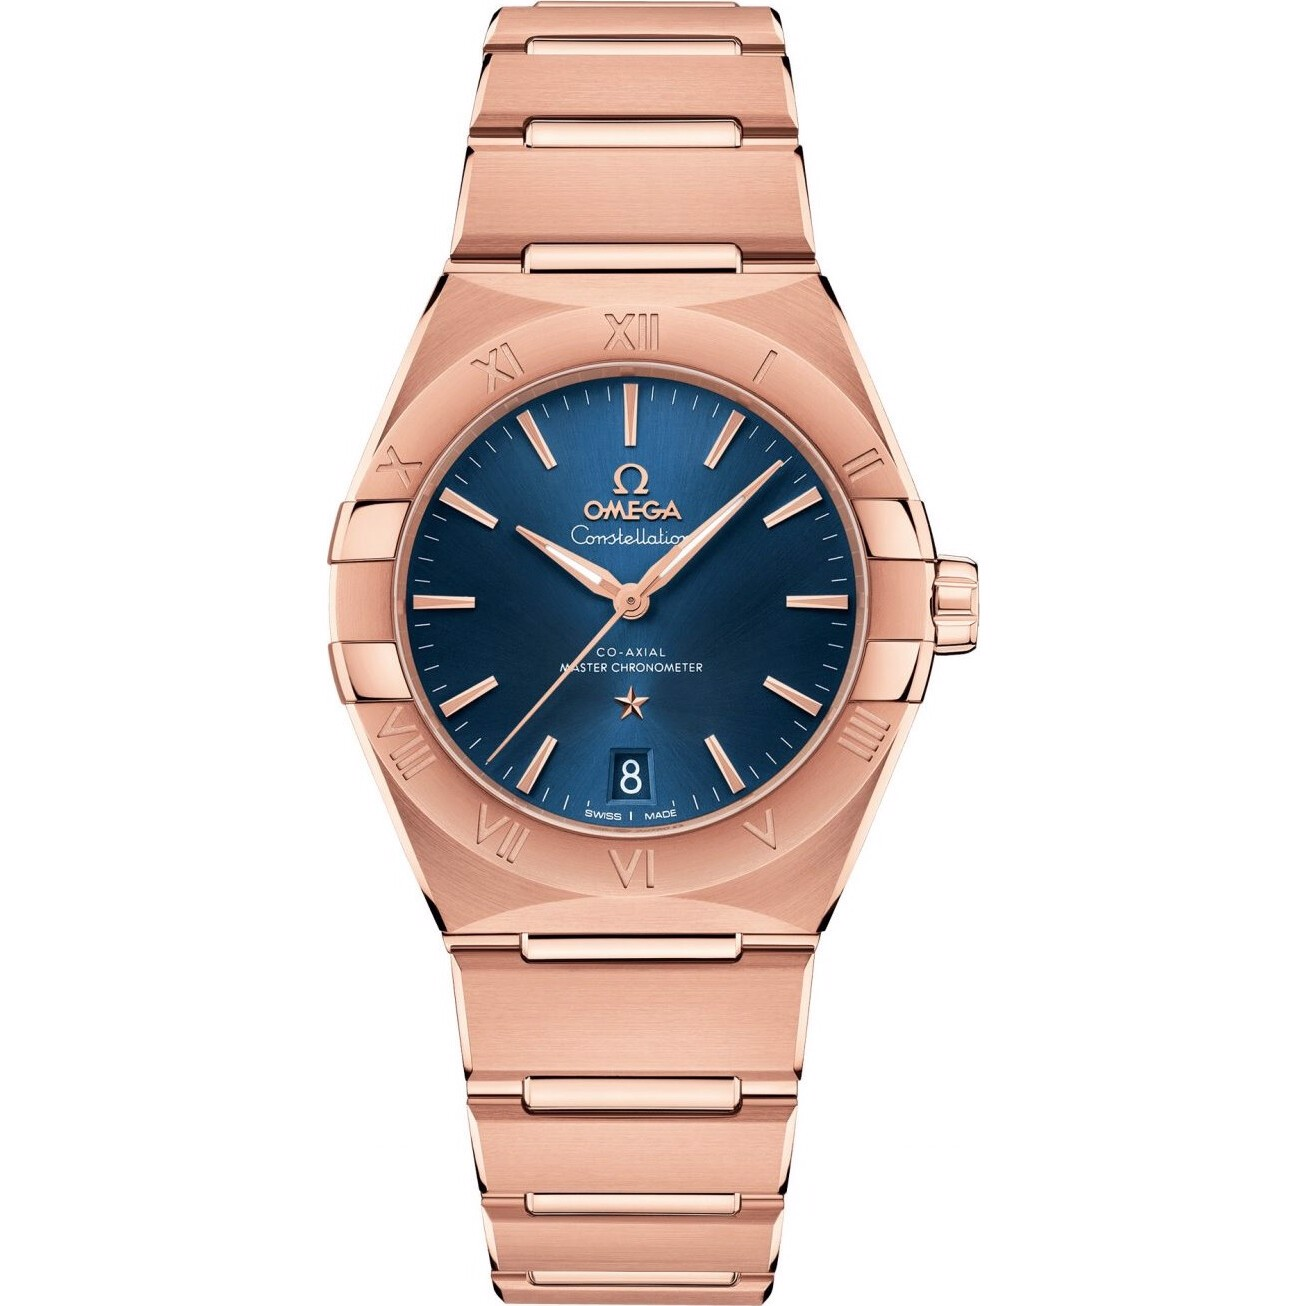 Omega Constellation 131.50.36.20.03.001 Watch 36mm